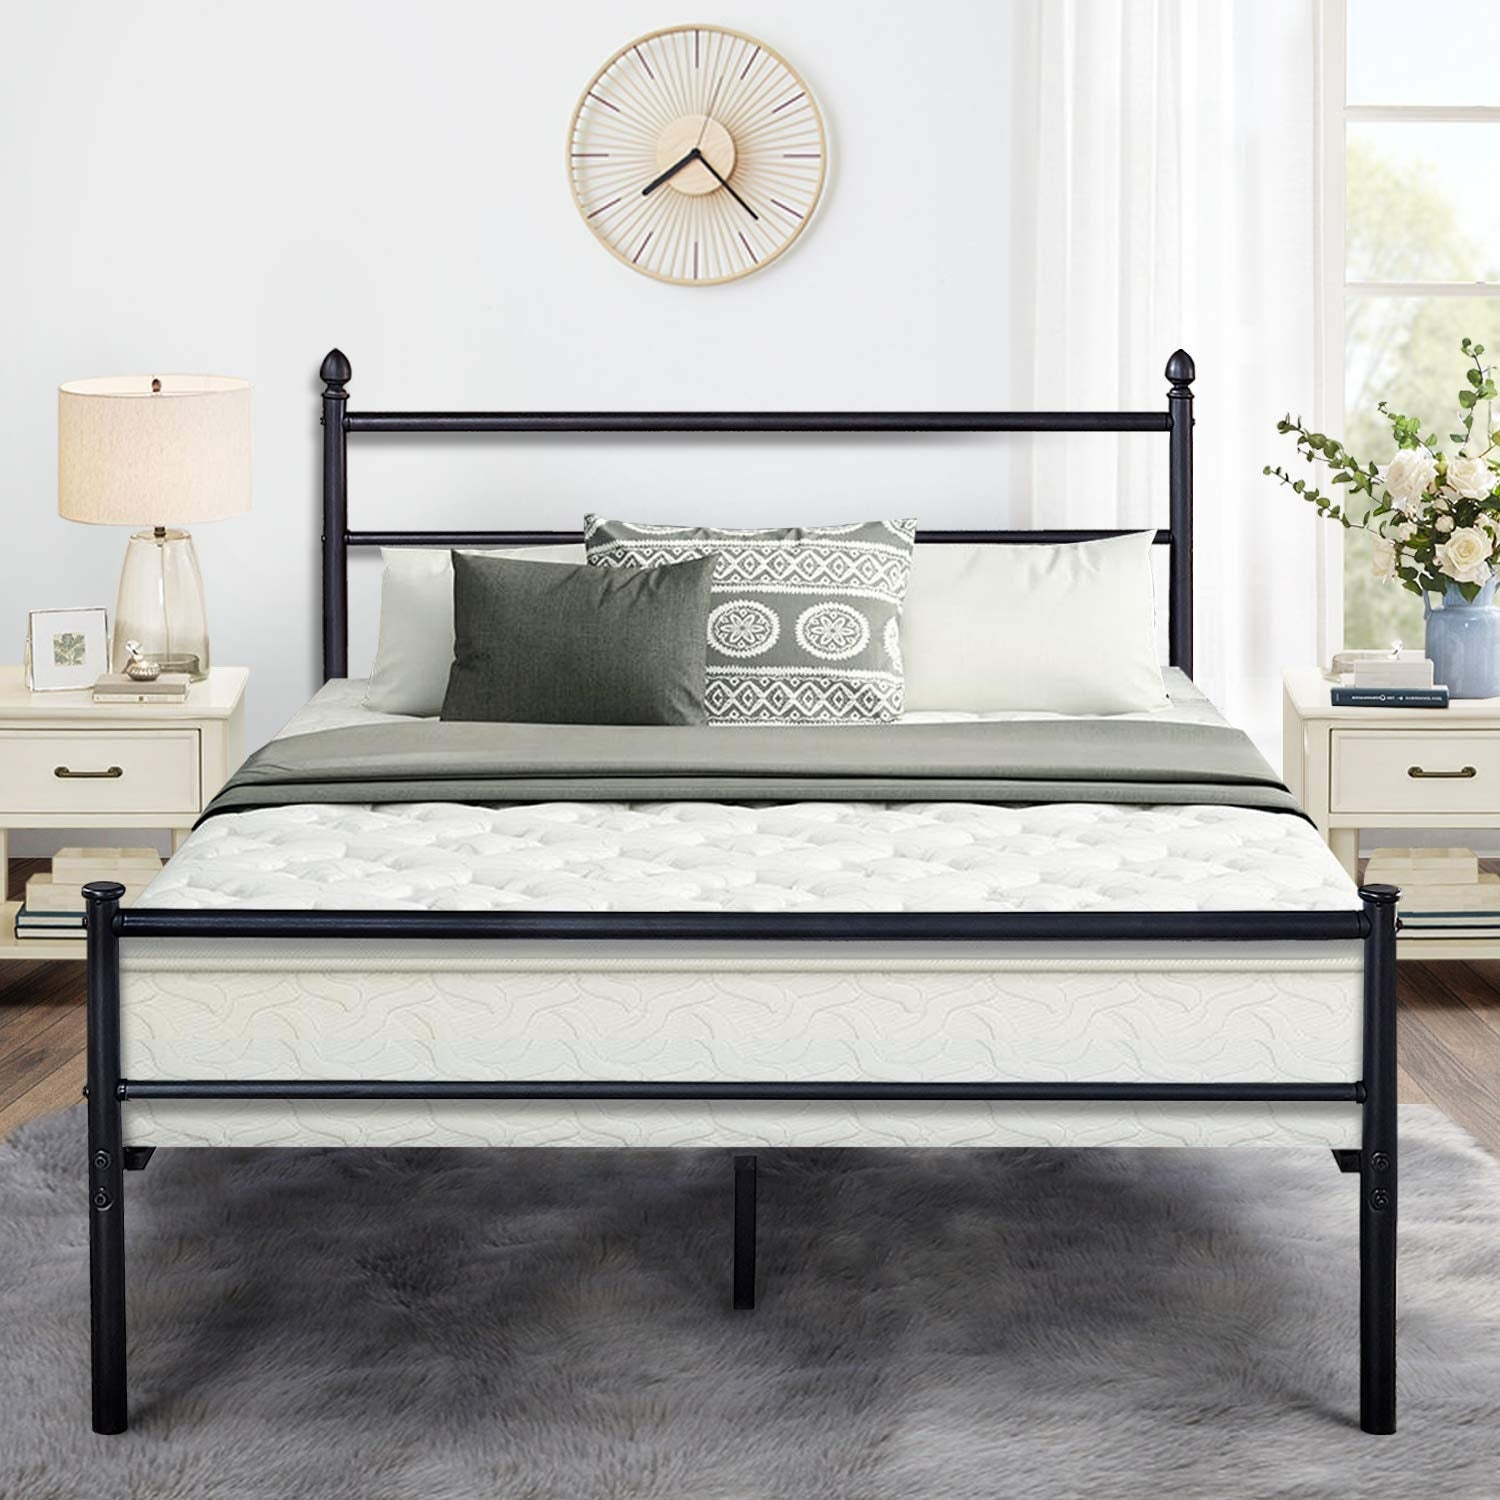 Shop Black Friday Deals On Vecelo Reinforced Metal Bed Frame Platform With Headboard Footboard Fixed Bed Frame Twin Full Queen Size 3 Opotion Overstock 28872904